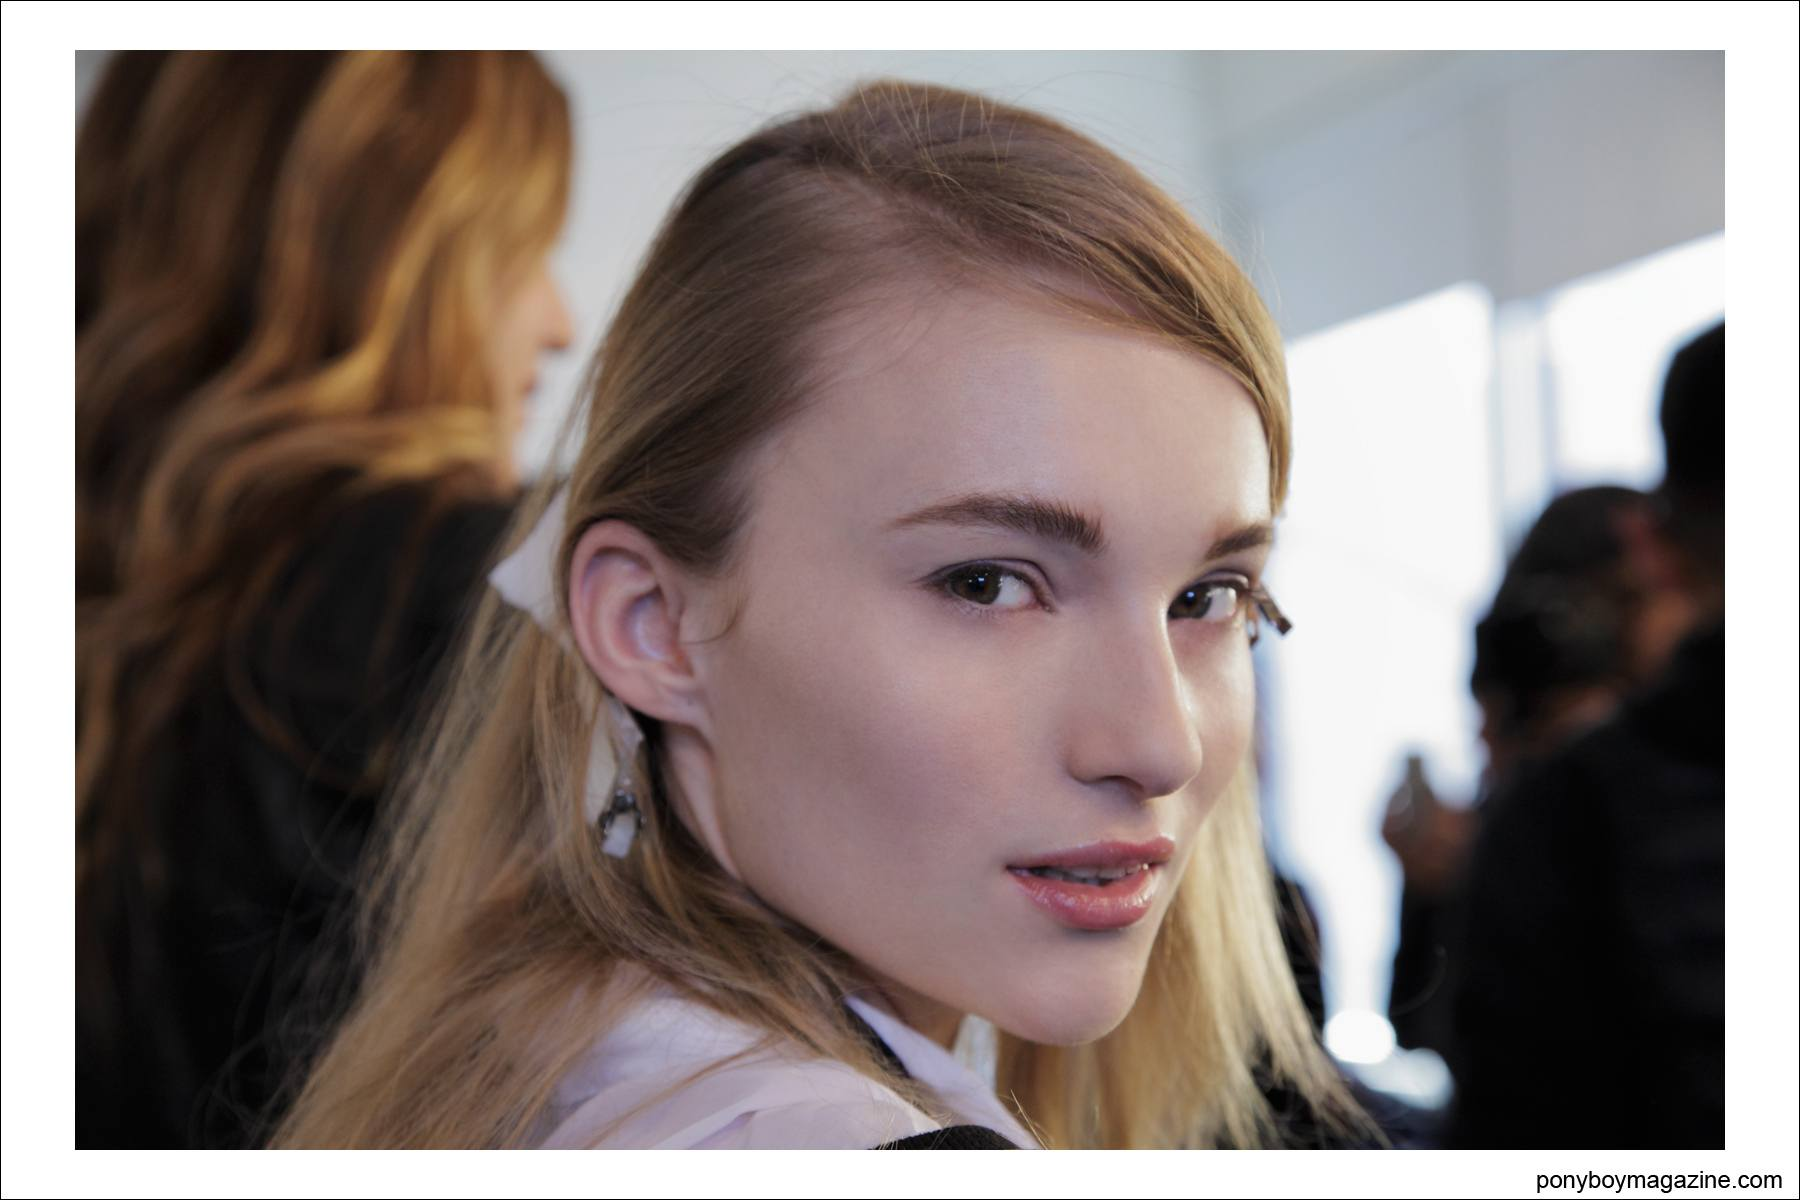 A model in hair and makeup poses backstage at Timo Weiland A/W 2014 collection at Milk Studios. Photographed by Alexander Thompson for Ponyboy Magazine in New York City.